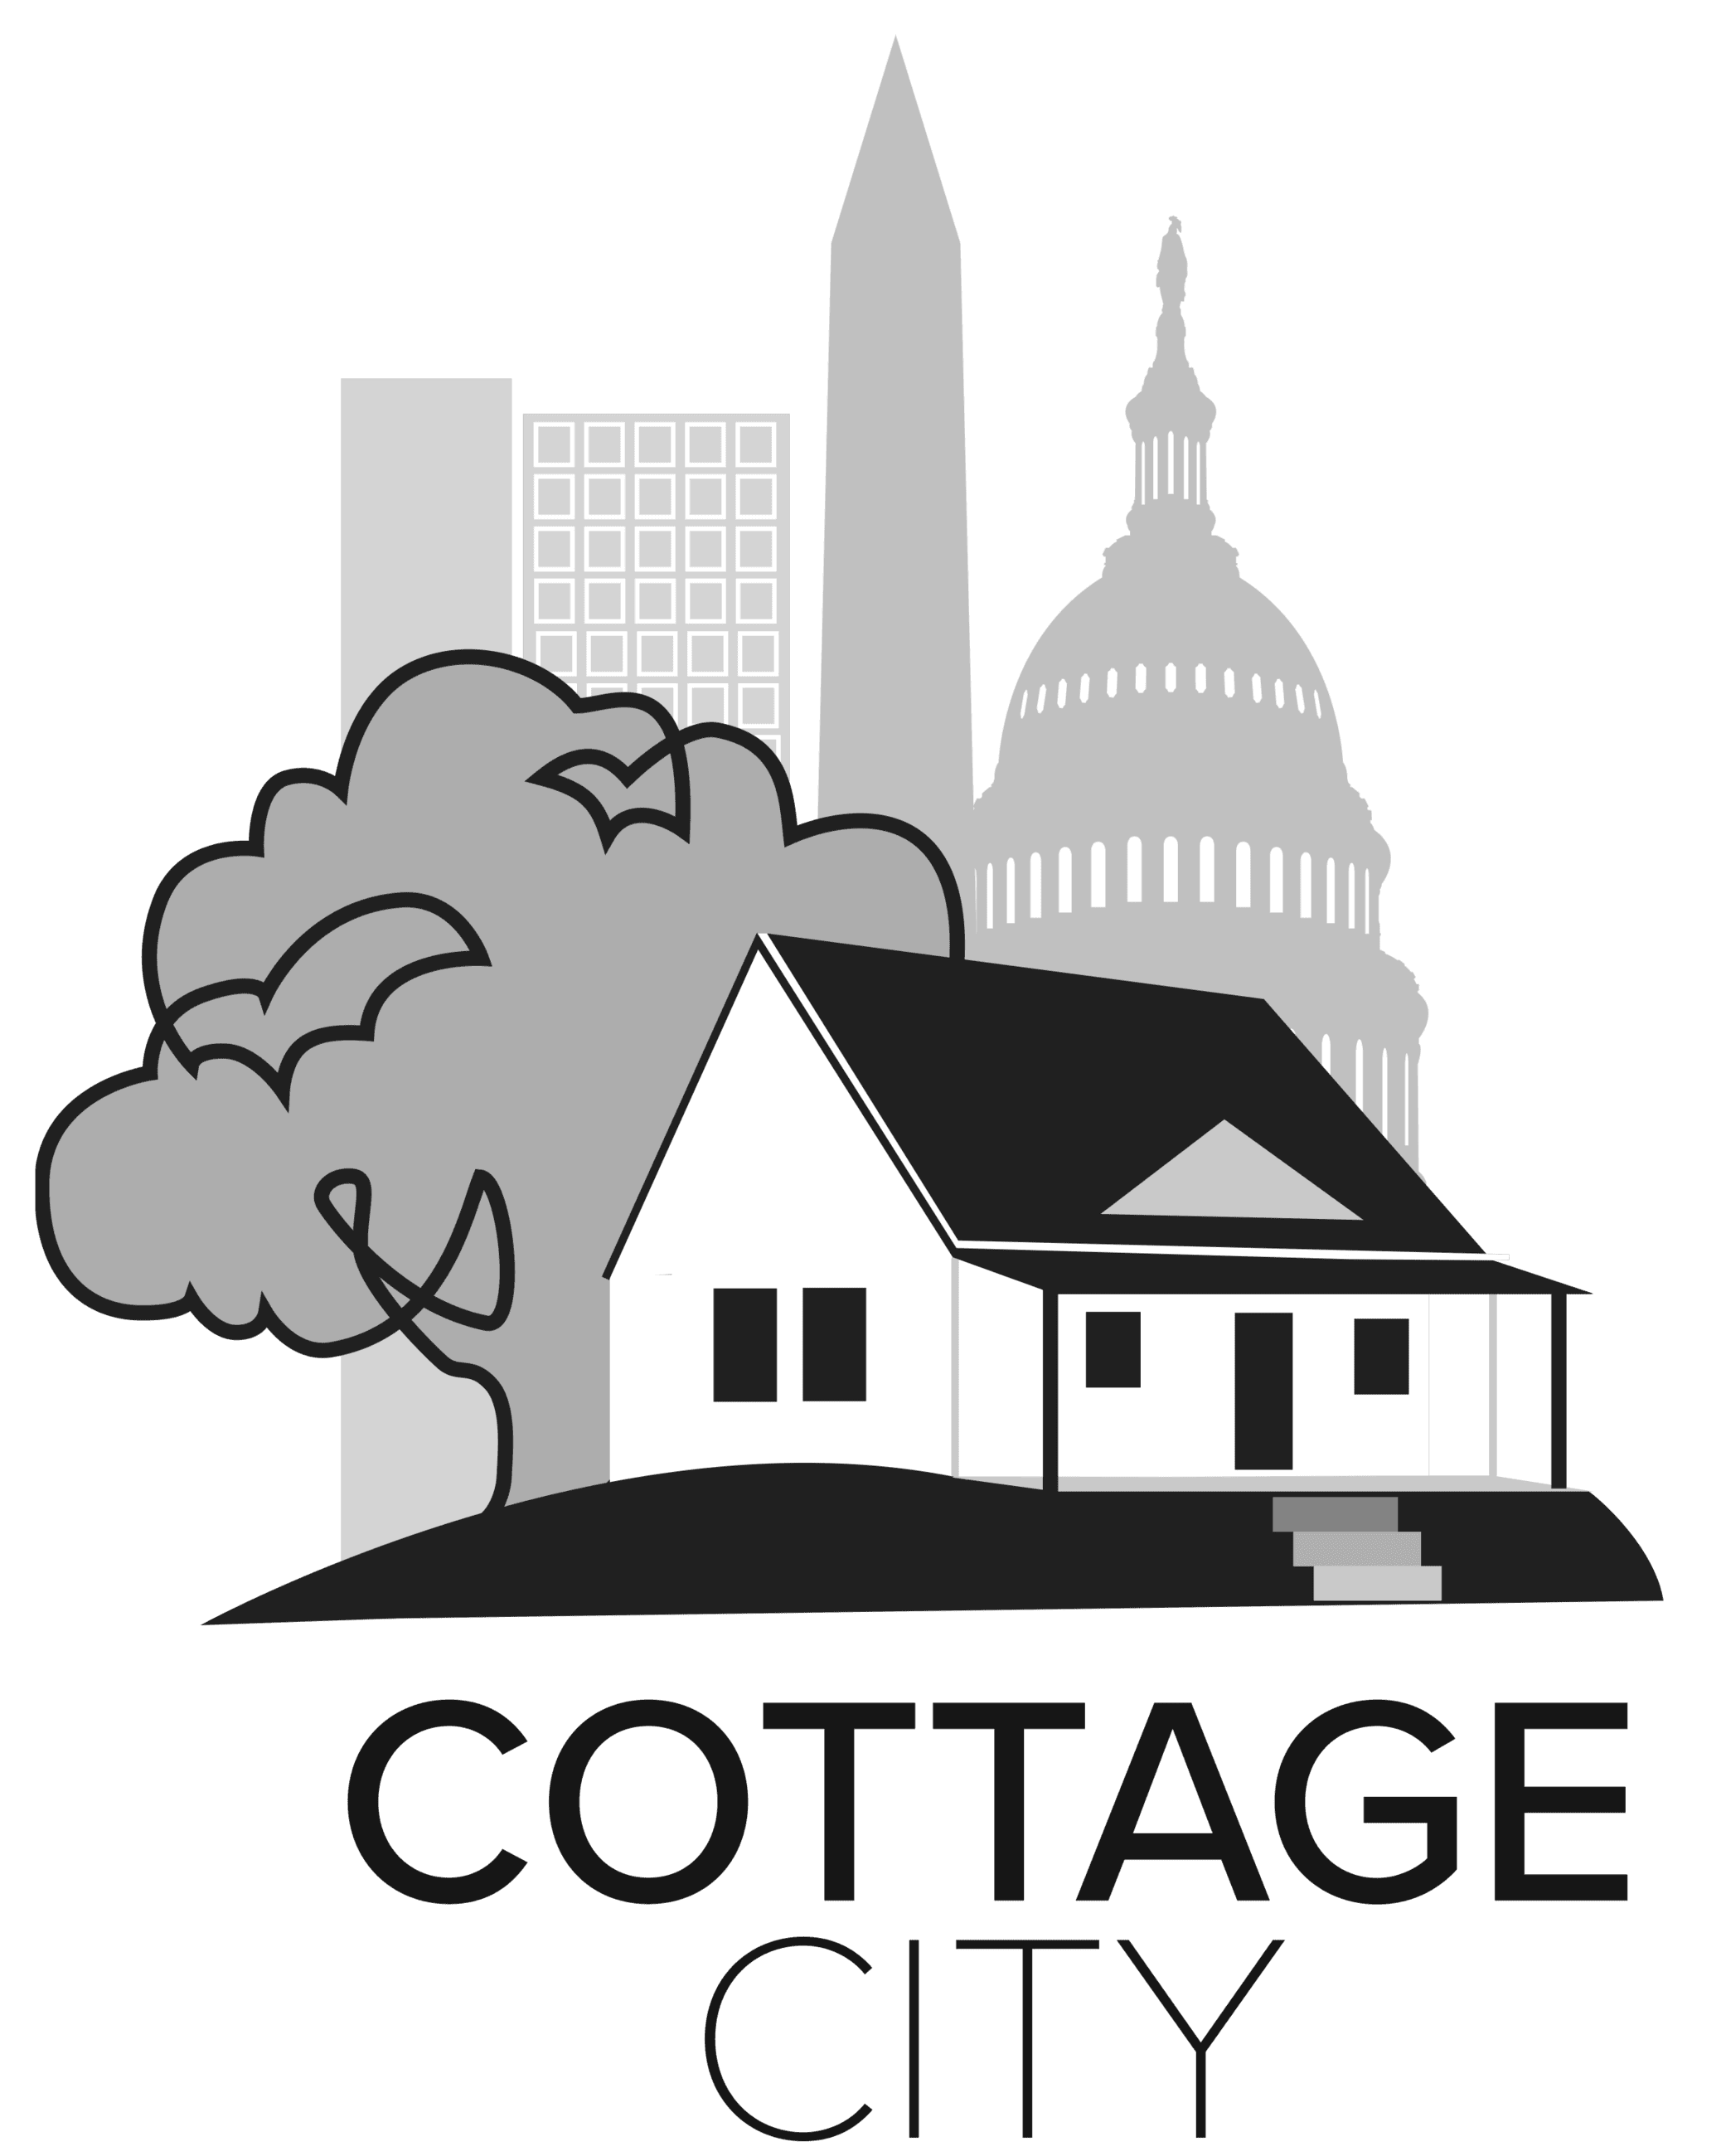 Final BW Cottage City Logo